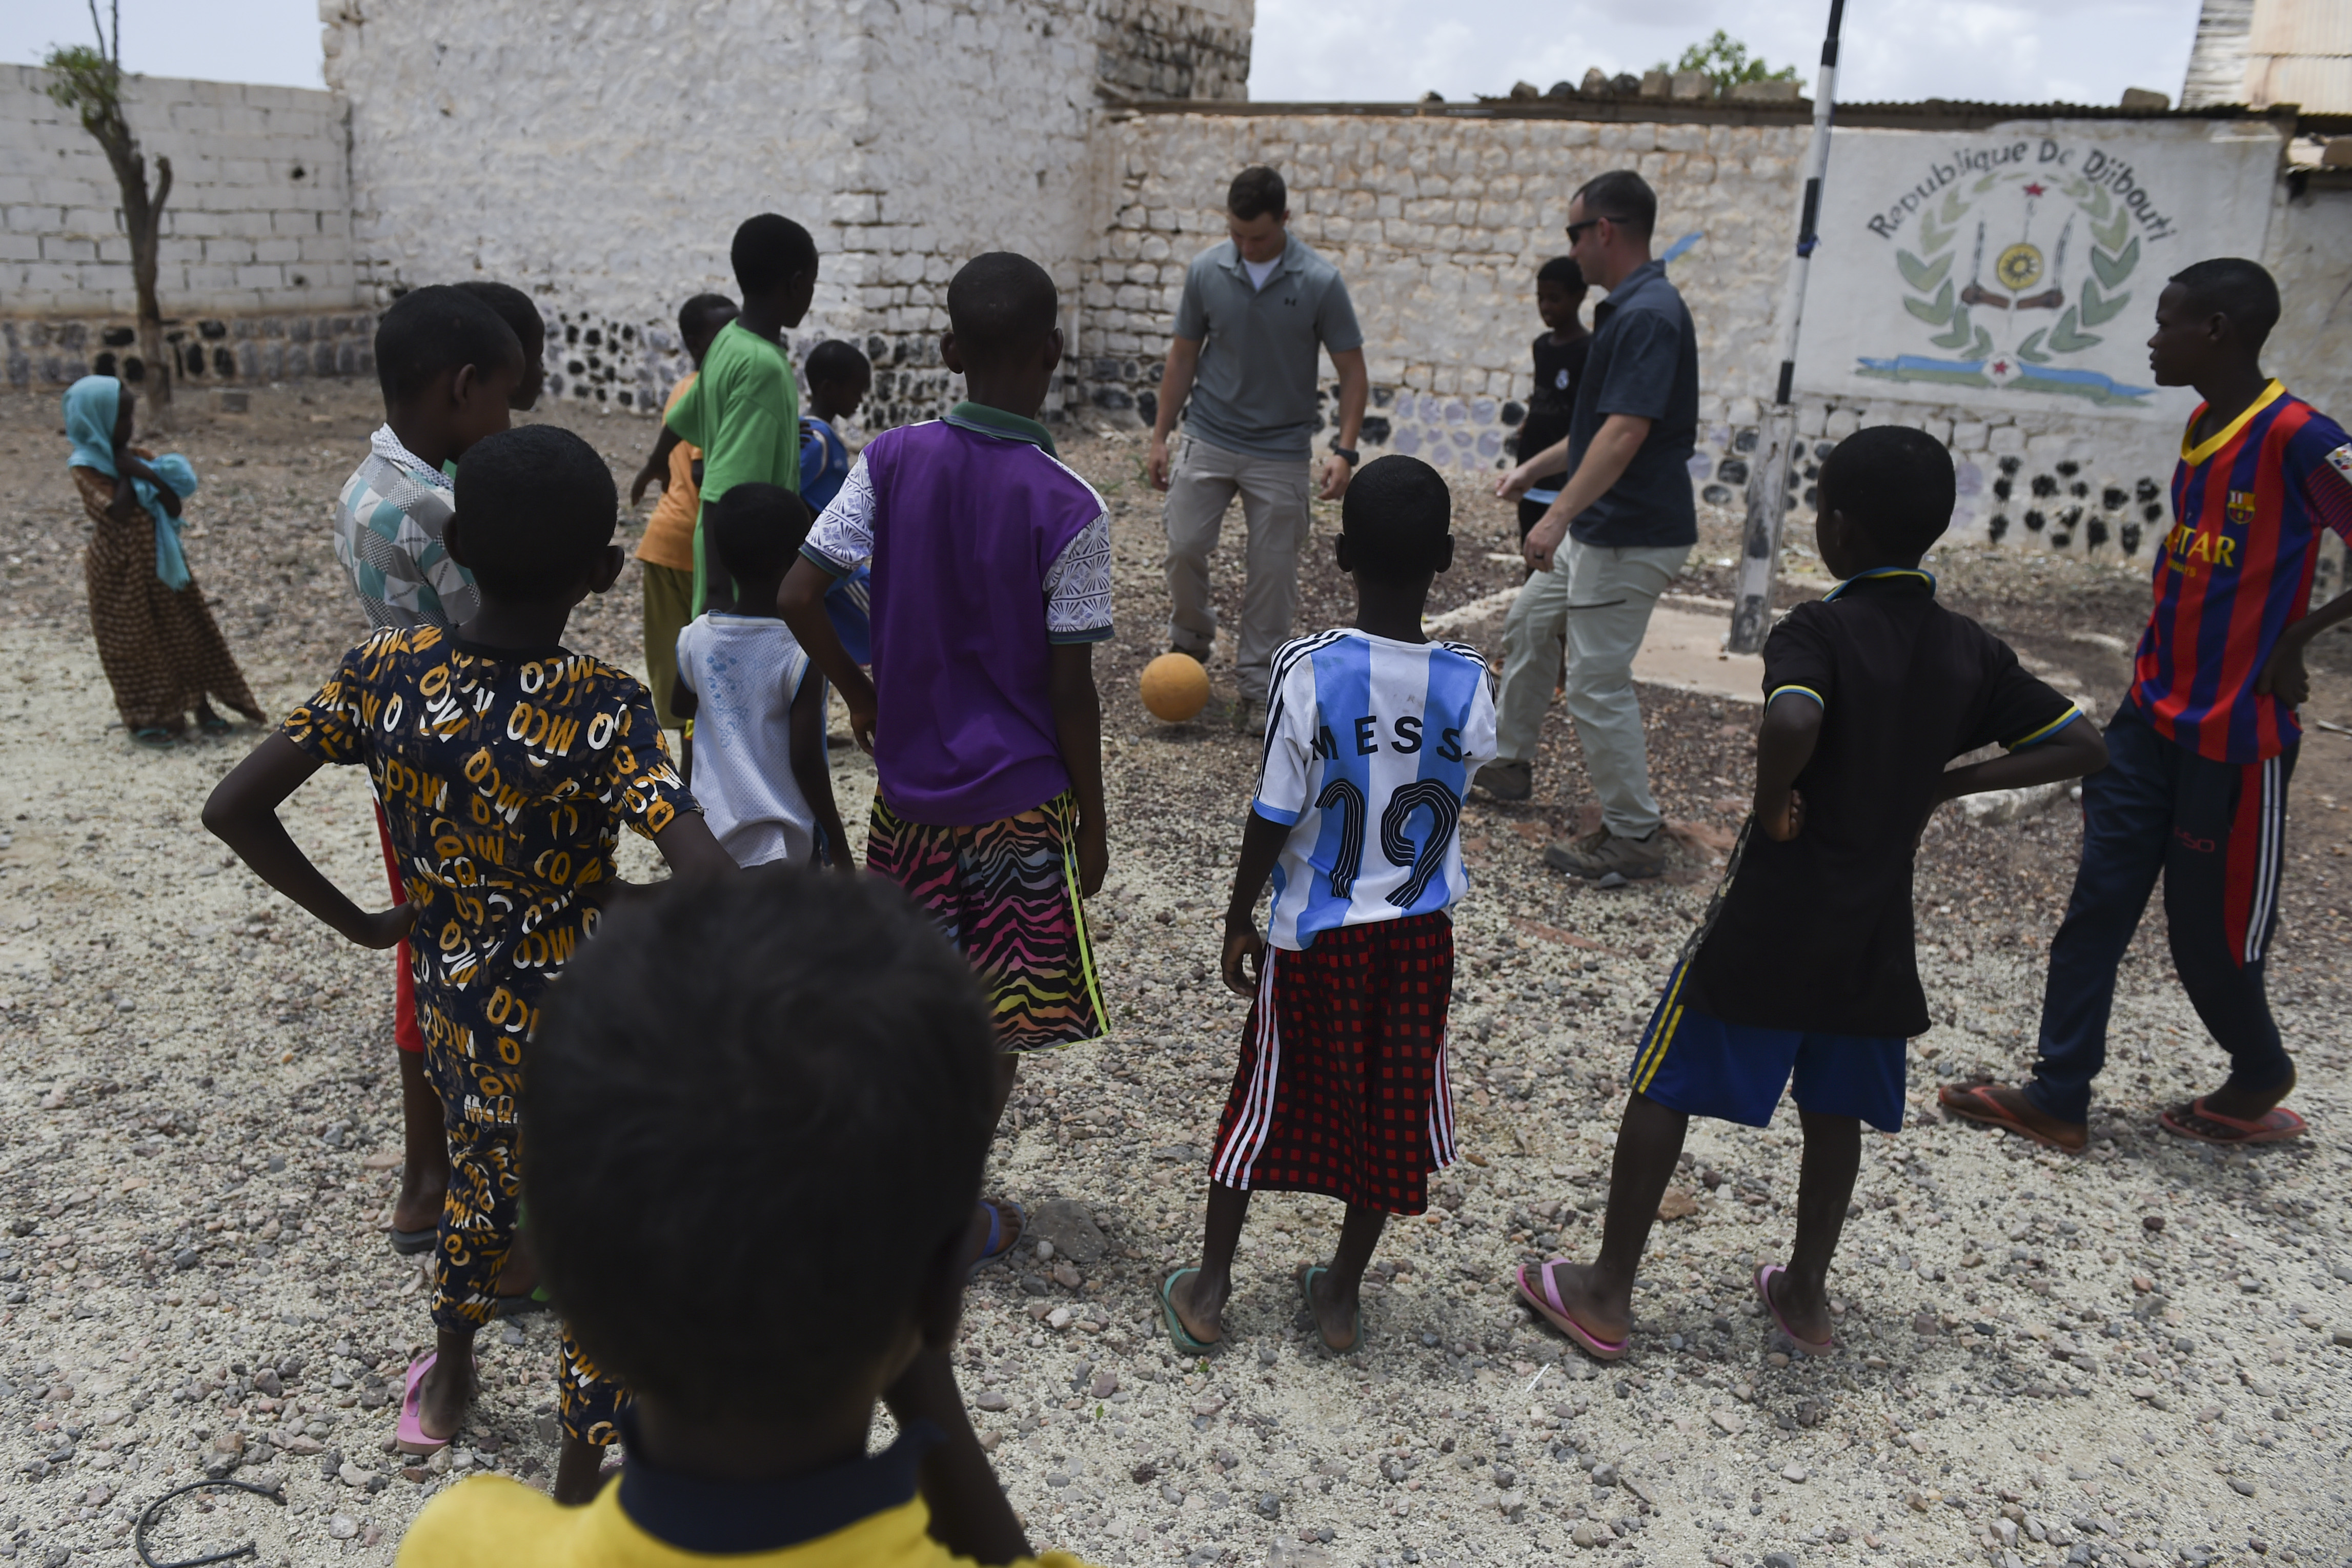 U.S. Army Sgt. Grady Kissee and Sgt. Robert Hawkins, both assigned to the Combined Joint Task Force-Horn of Africa, Military Information Support Operations, play soccer with children in the village of Holhol, Djibouti, May 18, 2017. Tactical Psychological Operations team members travelled with the 411th Civil Affairs Battalion, Bravo Company, Civil Affairs Team 3, to the village of Holhol to conduct a counter violent extremism assessment in support of the Combined Joint Task Force- Horn of Africa's effort to neutralize violent extremist organizations to create a stable, secure environment in East Africa. (U.S. Air Force Photo by Eboni Prince)